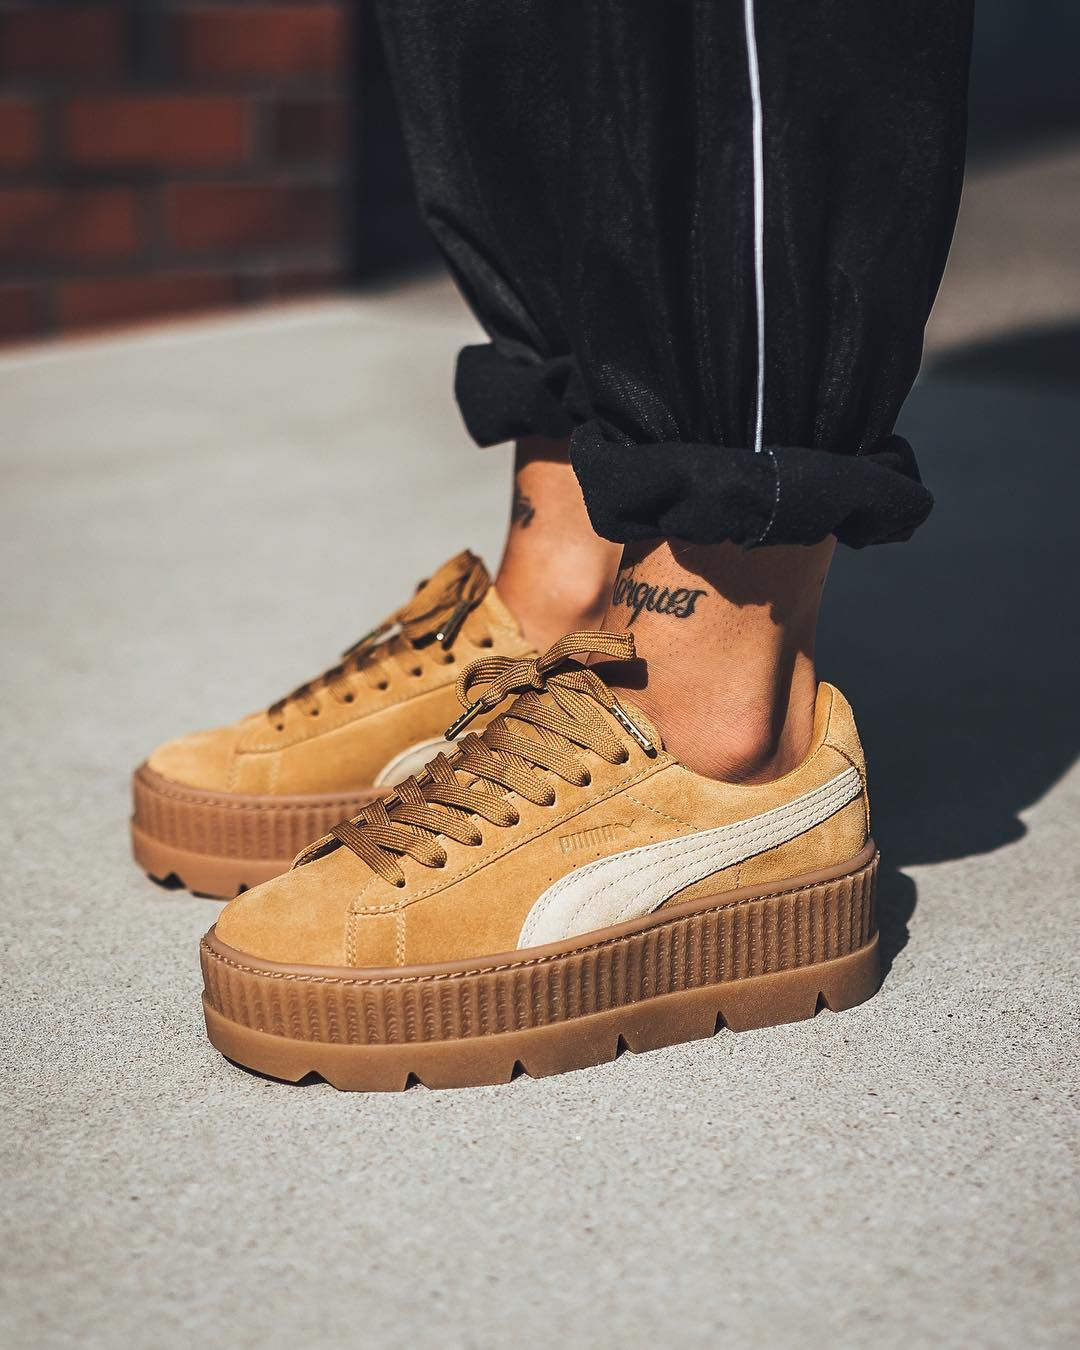 2aed66f14031 Fenty By Rihanna x Puma Cleated Creeper Suede